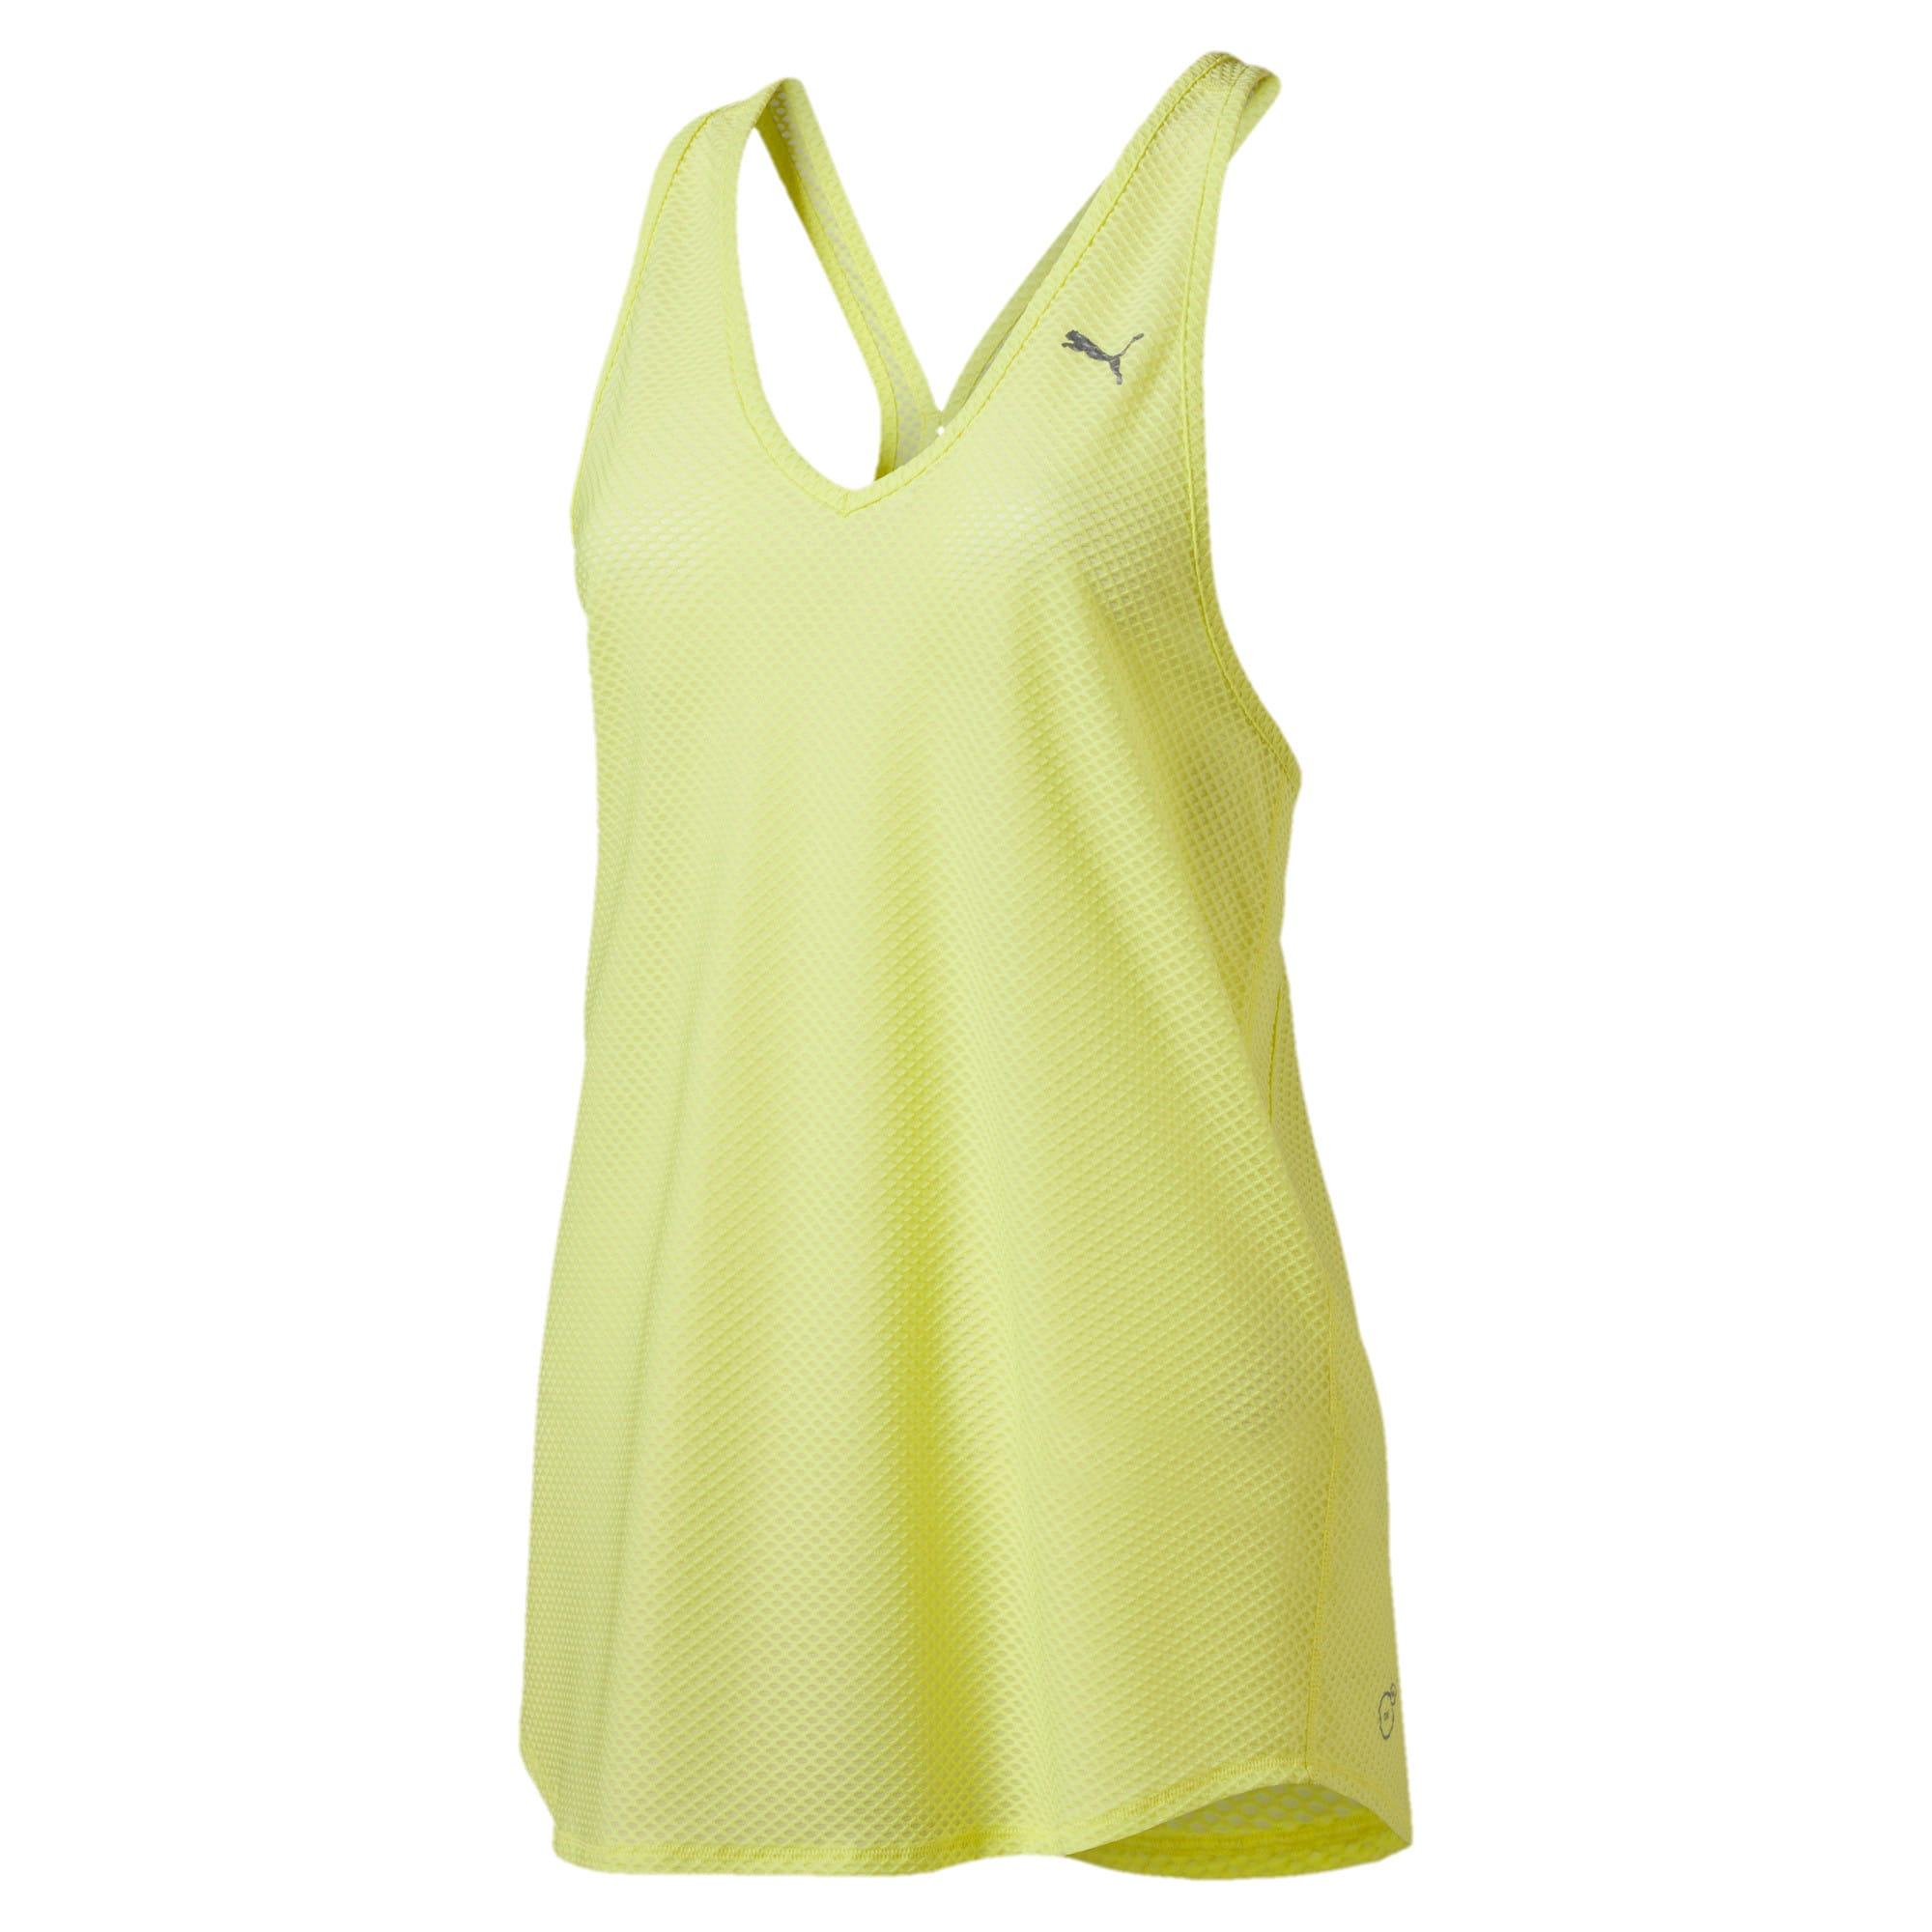 Thumbnail 4 of Active Training Women's Mesh It Up Tank Top, SOFT FLUO YELLOW, medium-IND